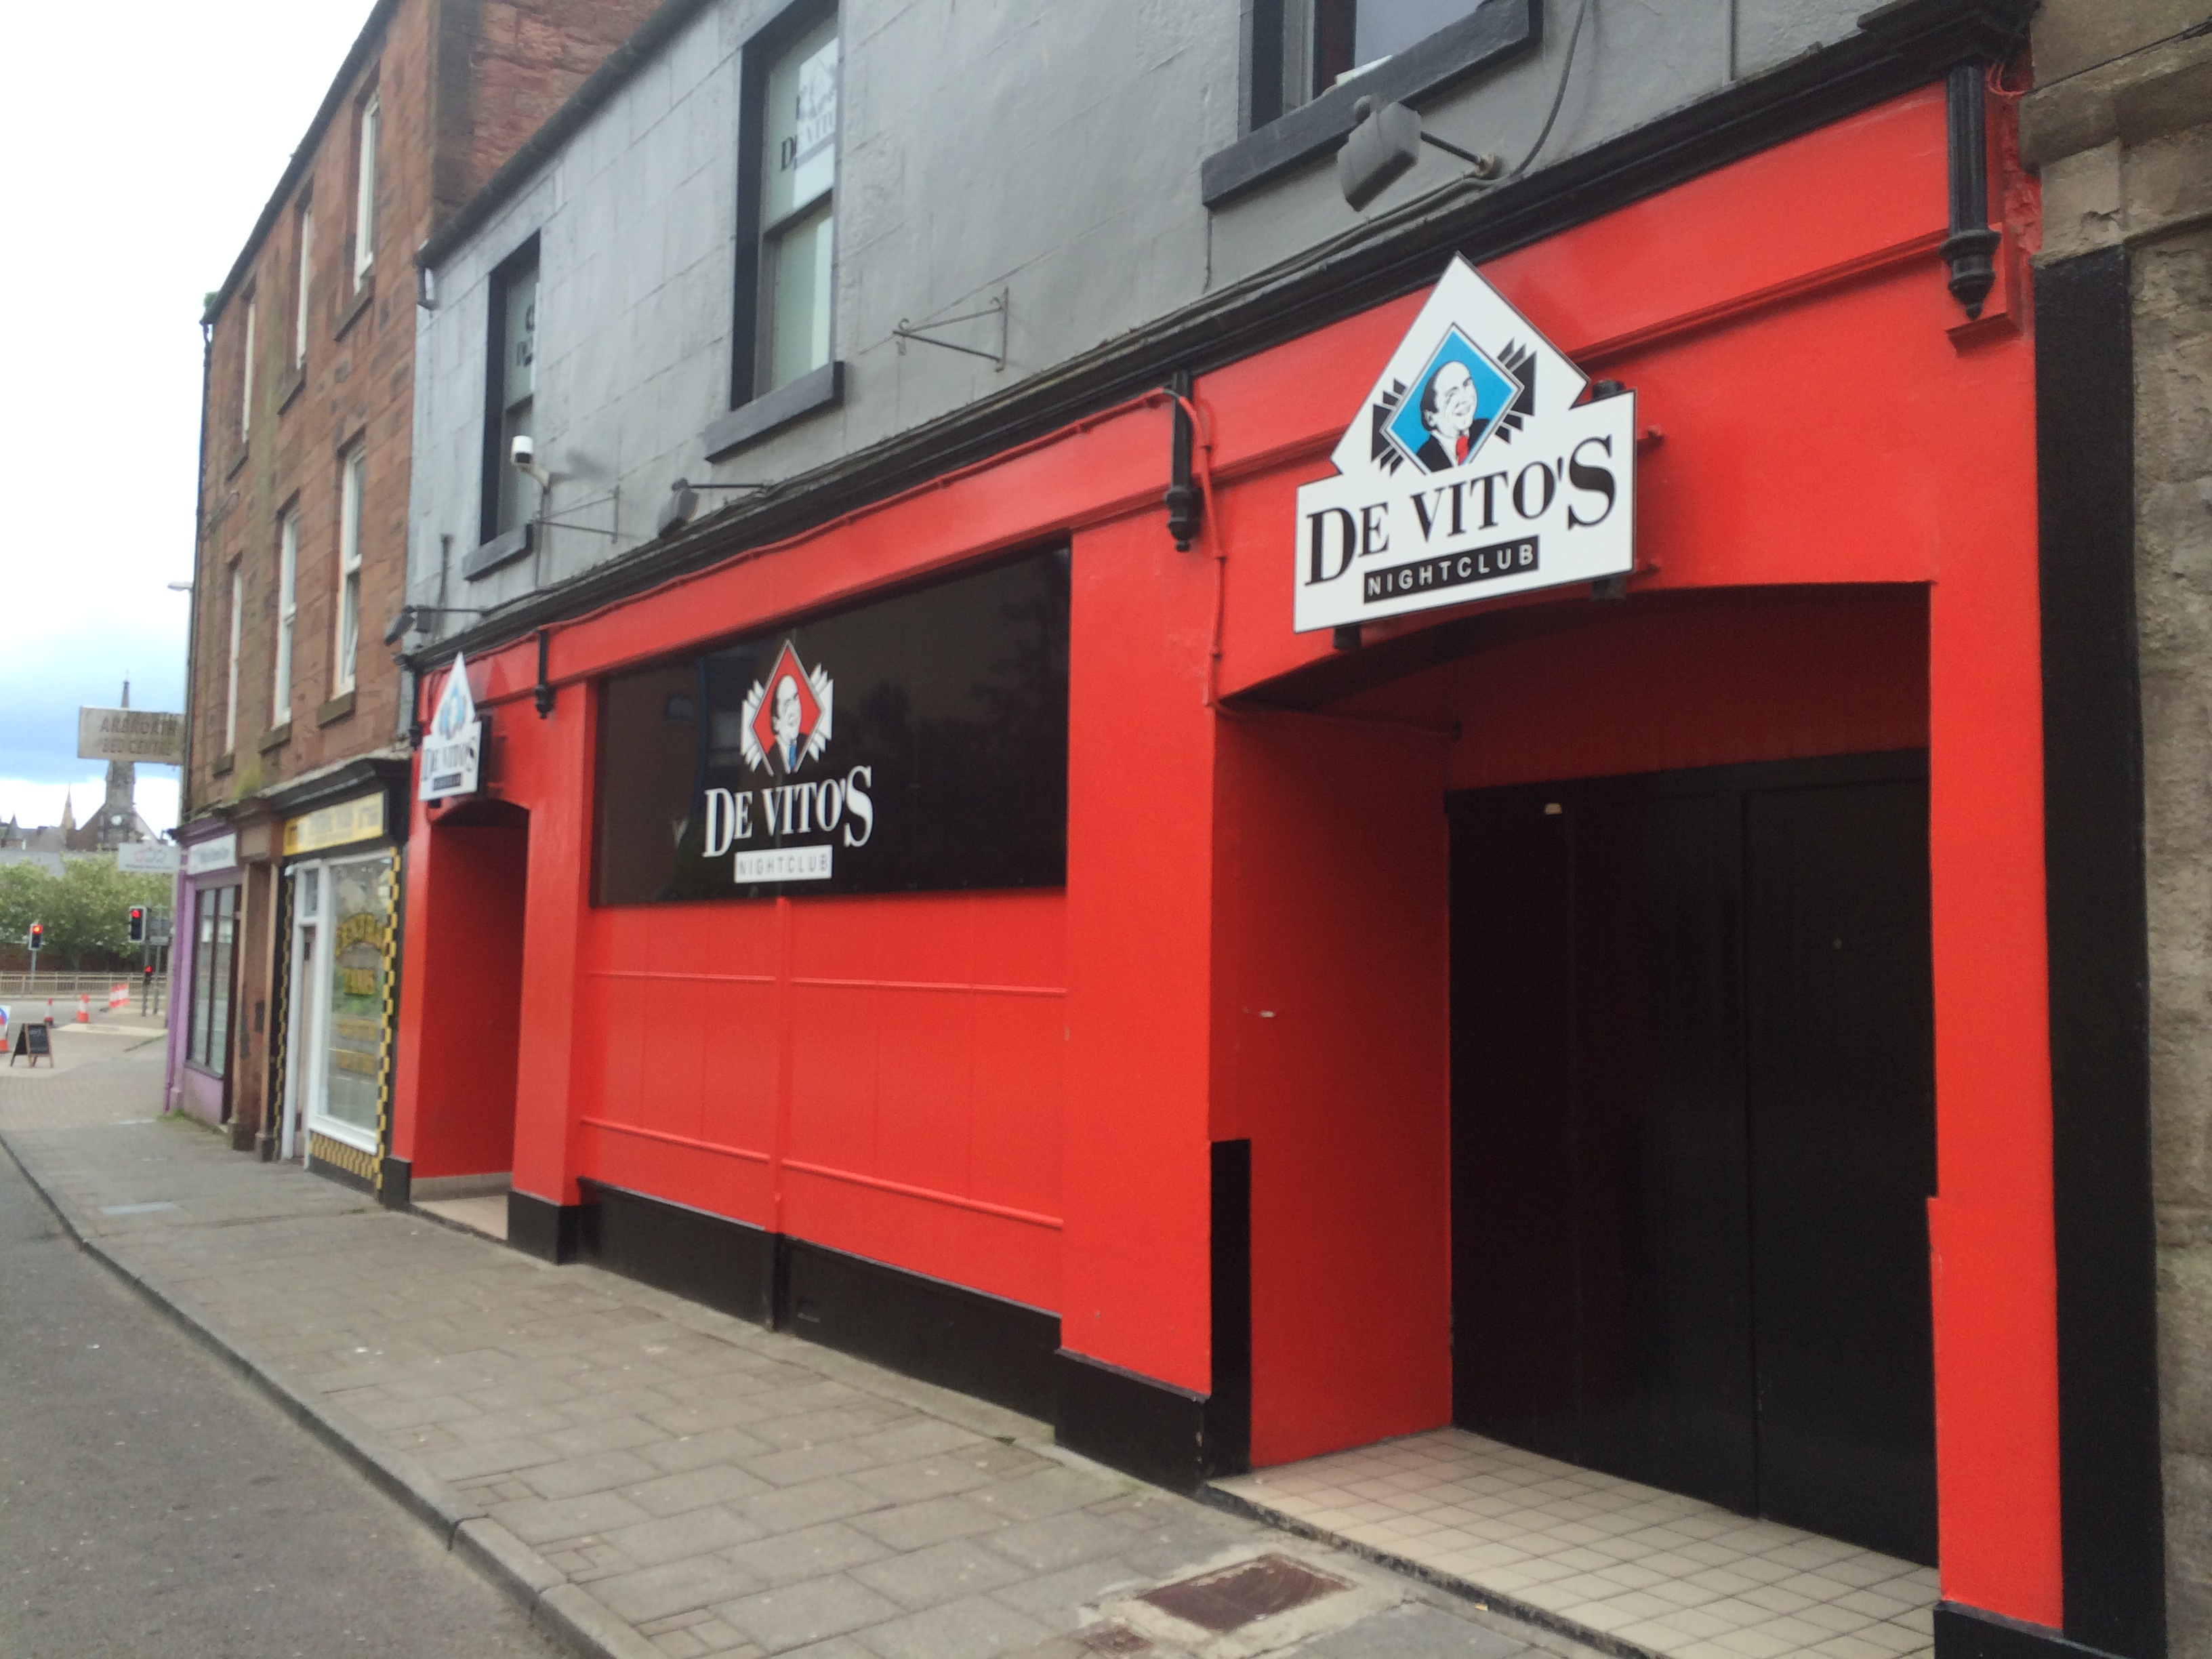 The incident took place at De Vito's nightclub.